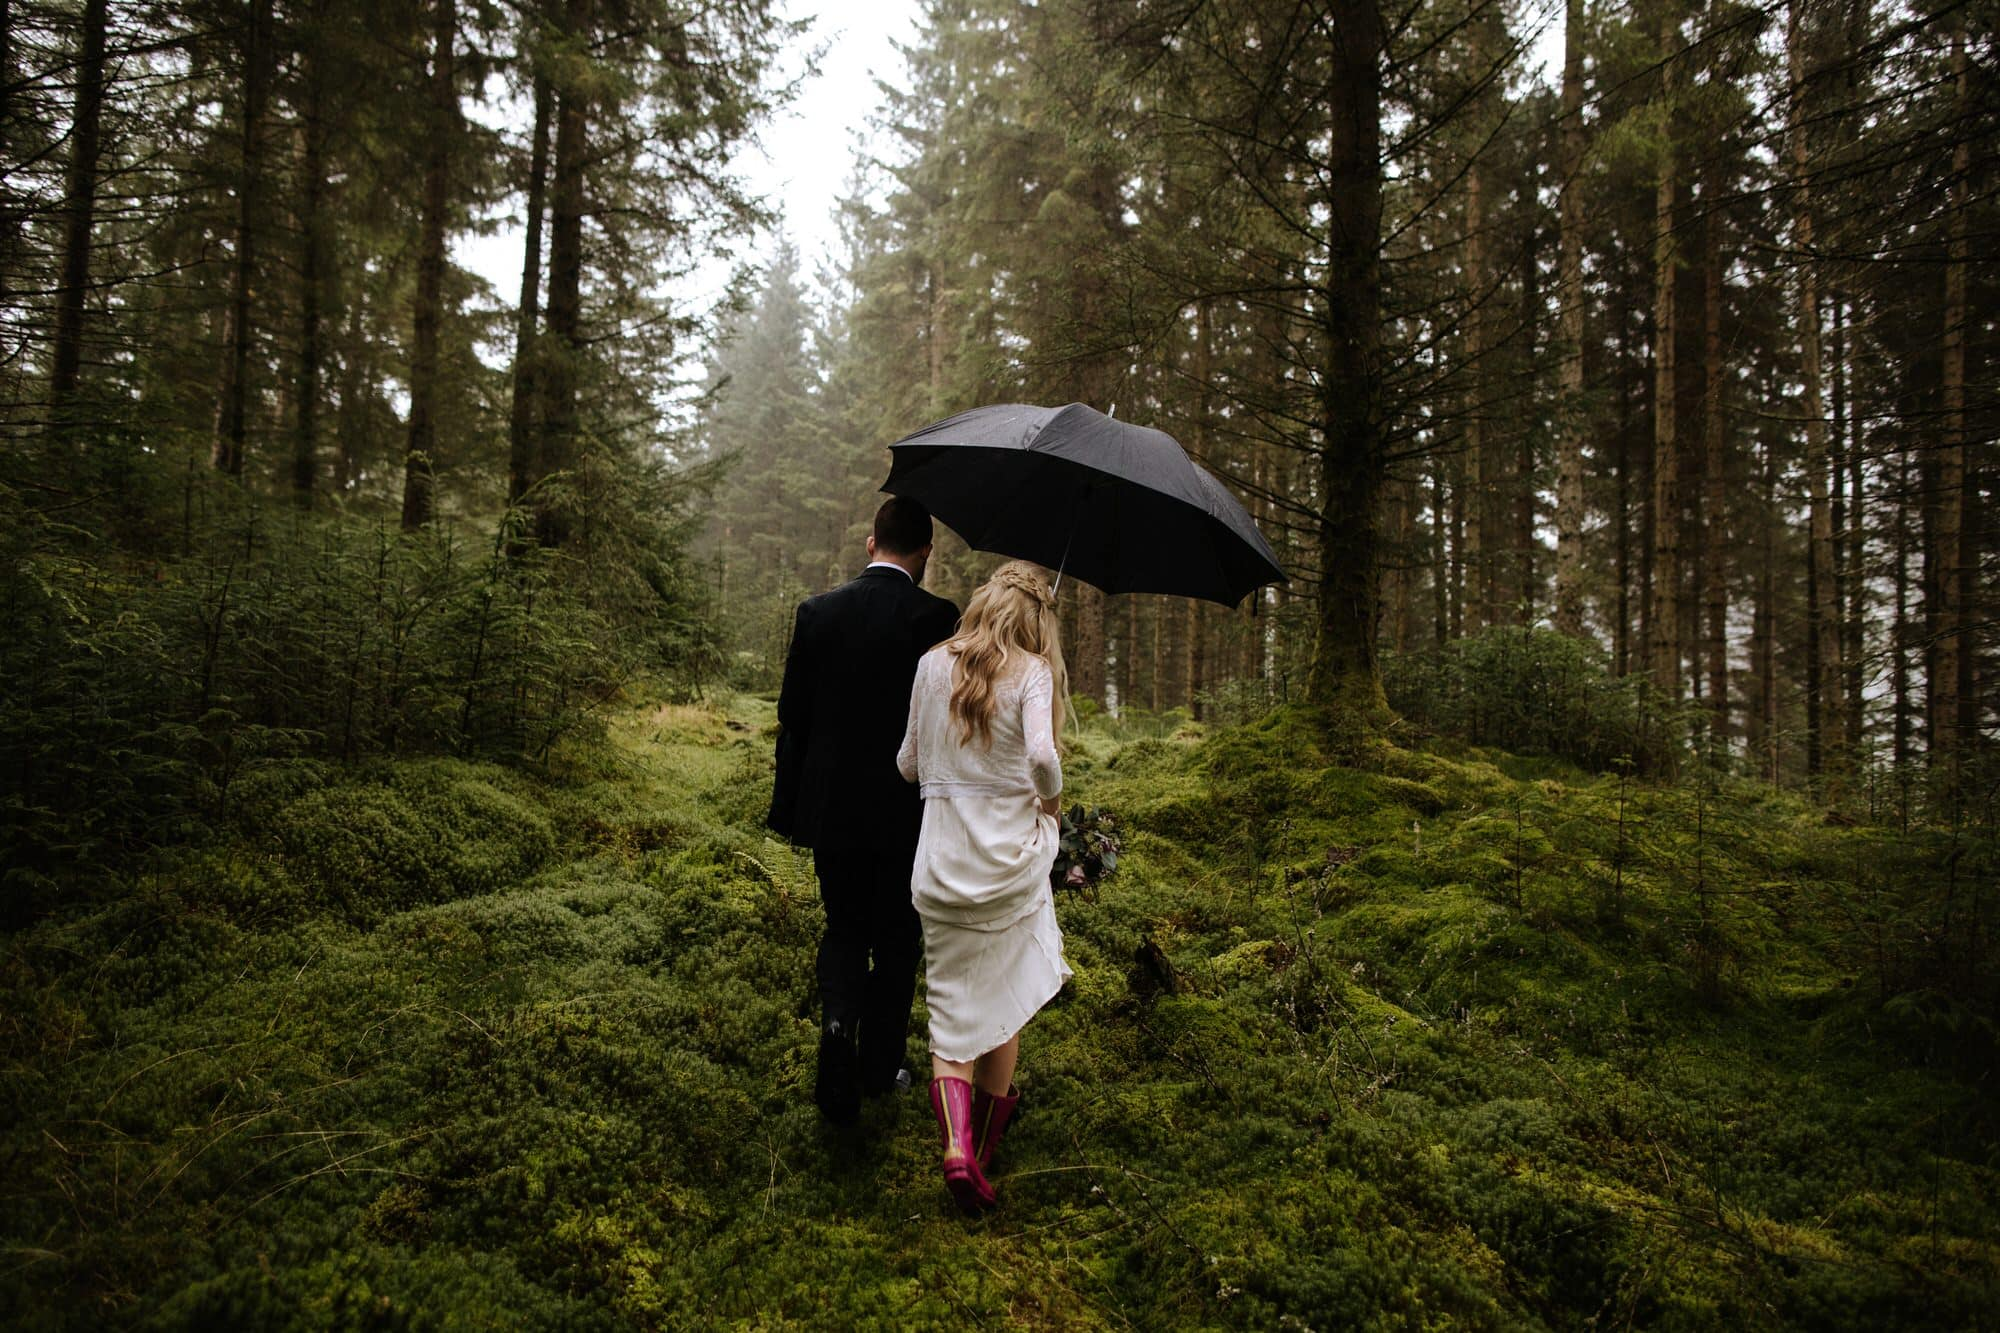 LOCH DRUNKIE TROSSACHS STIRLING ELOPEMENT BRIDE IN PINK WELLIES FOREST ZOE ALEXANDRA PHOTOGRAPHY